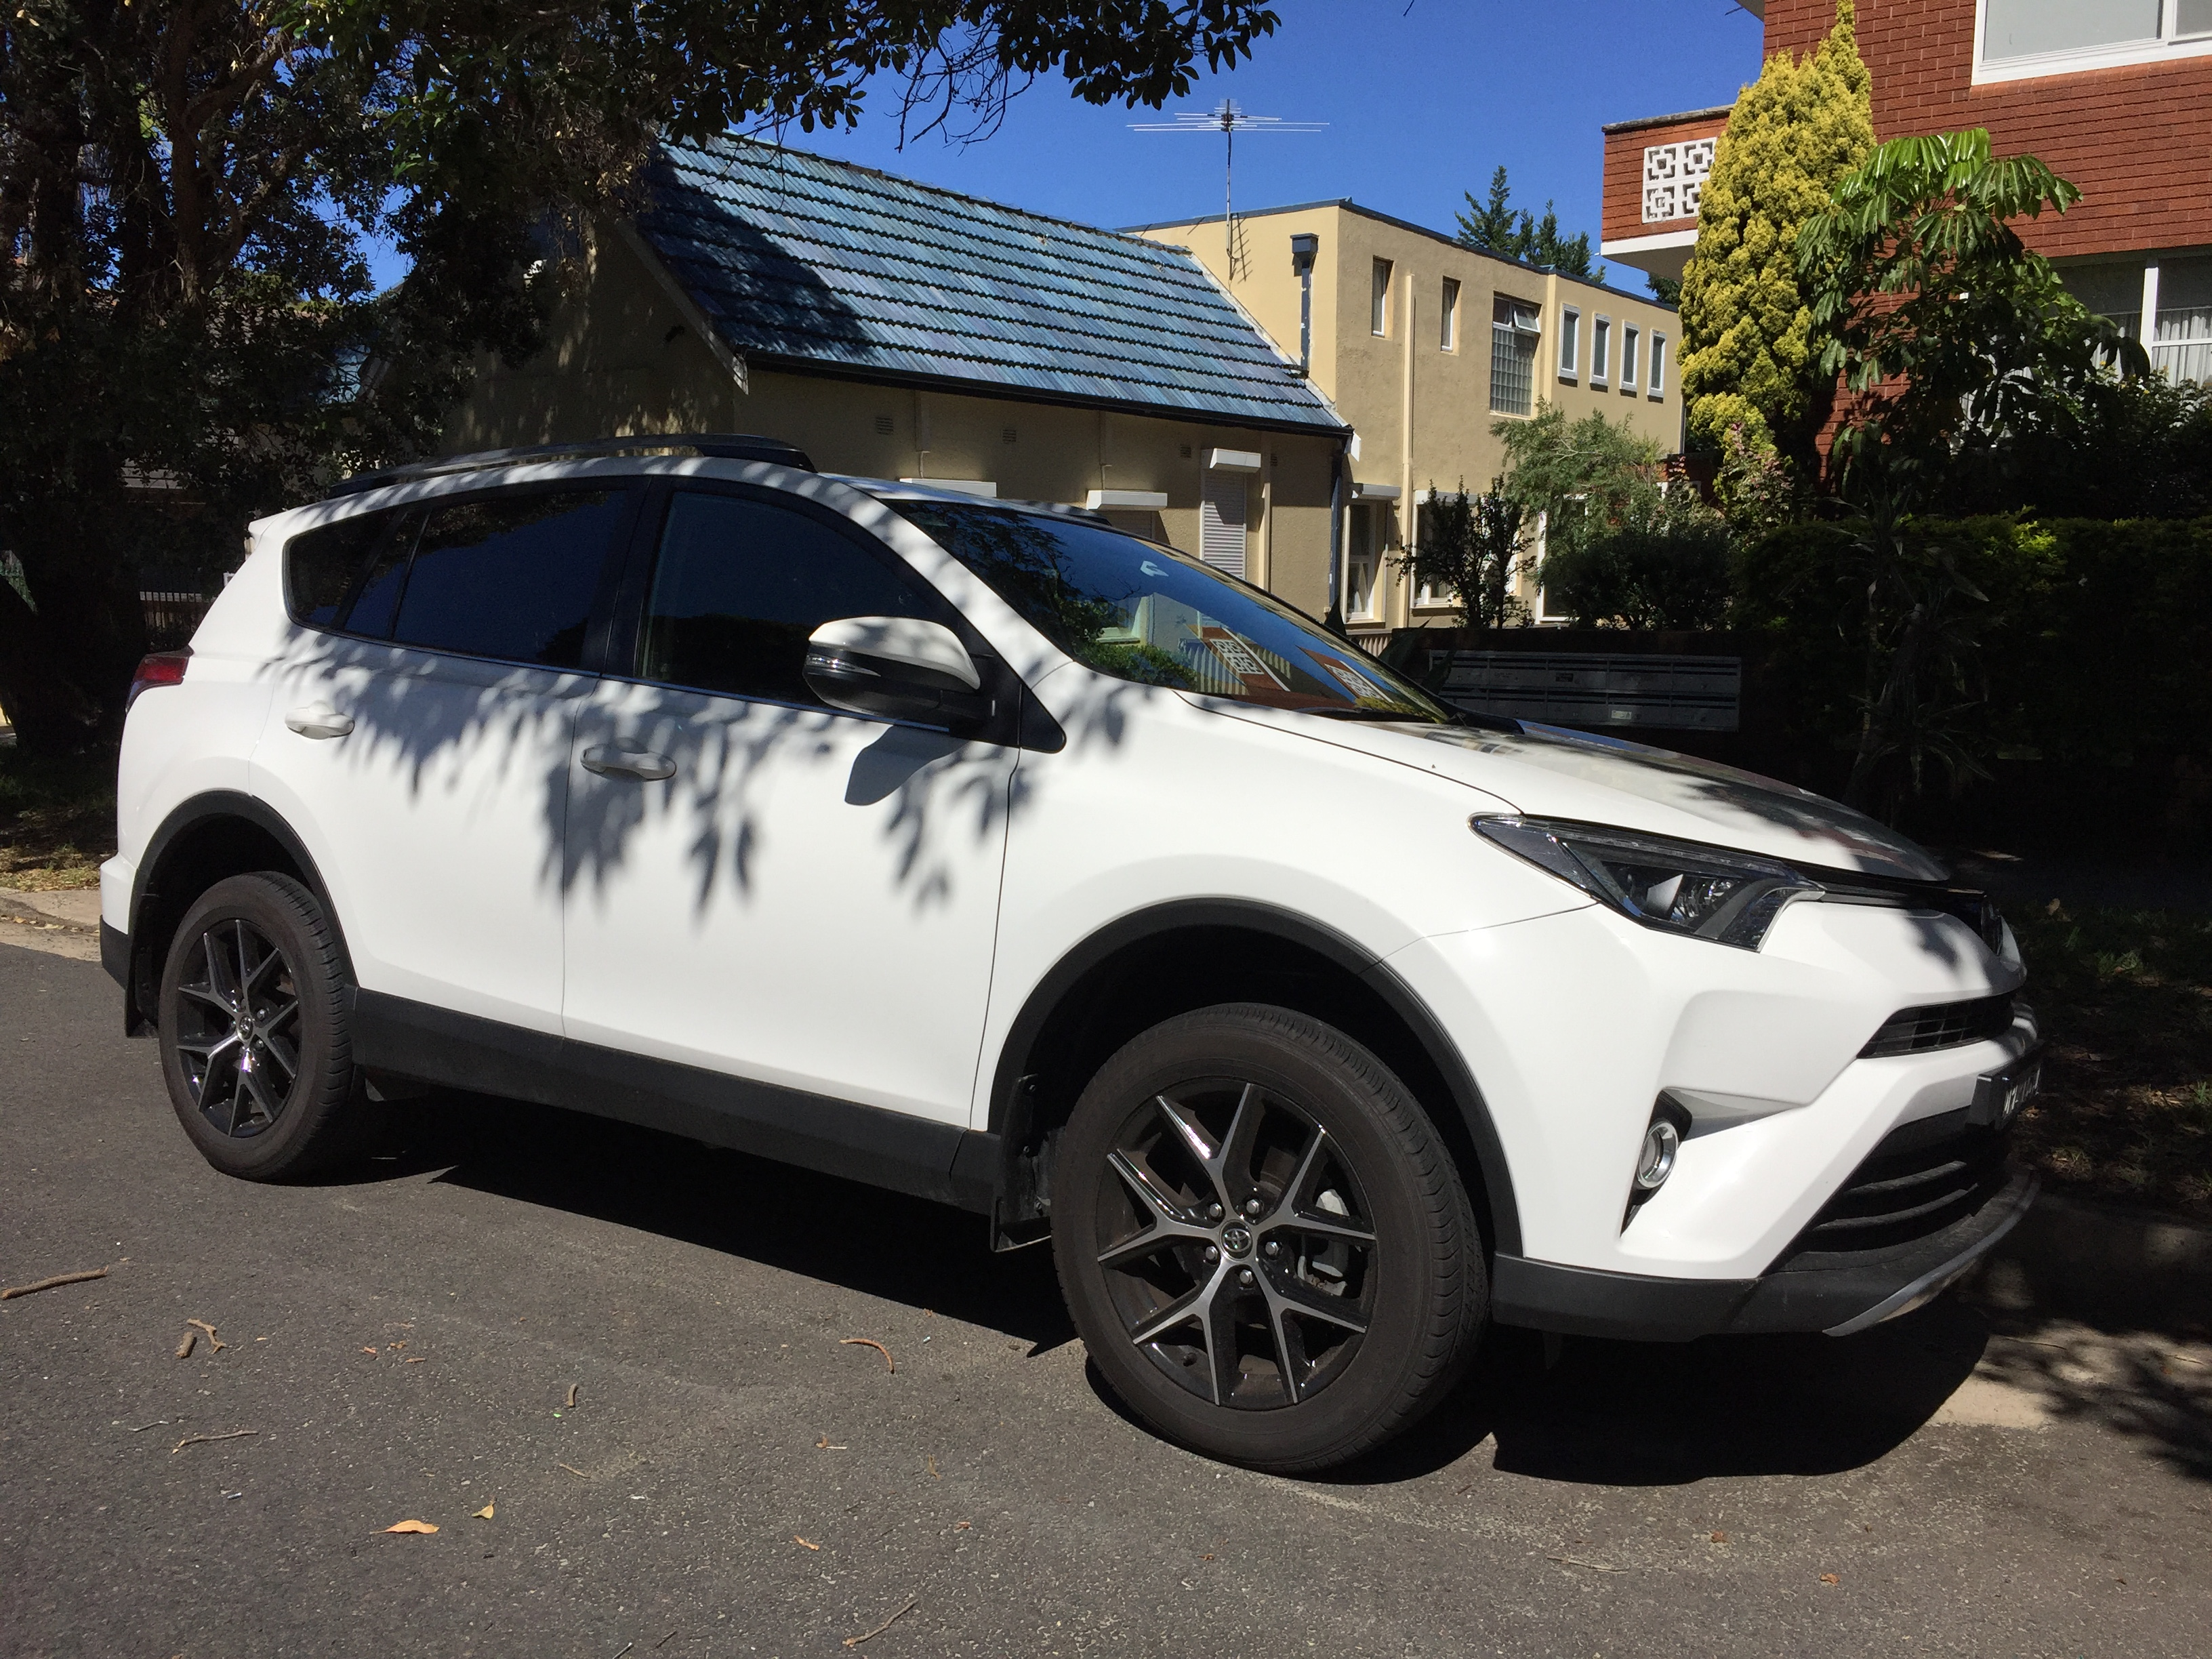 Picture of Jacquie's 2017 Toyota Rav 4